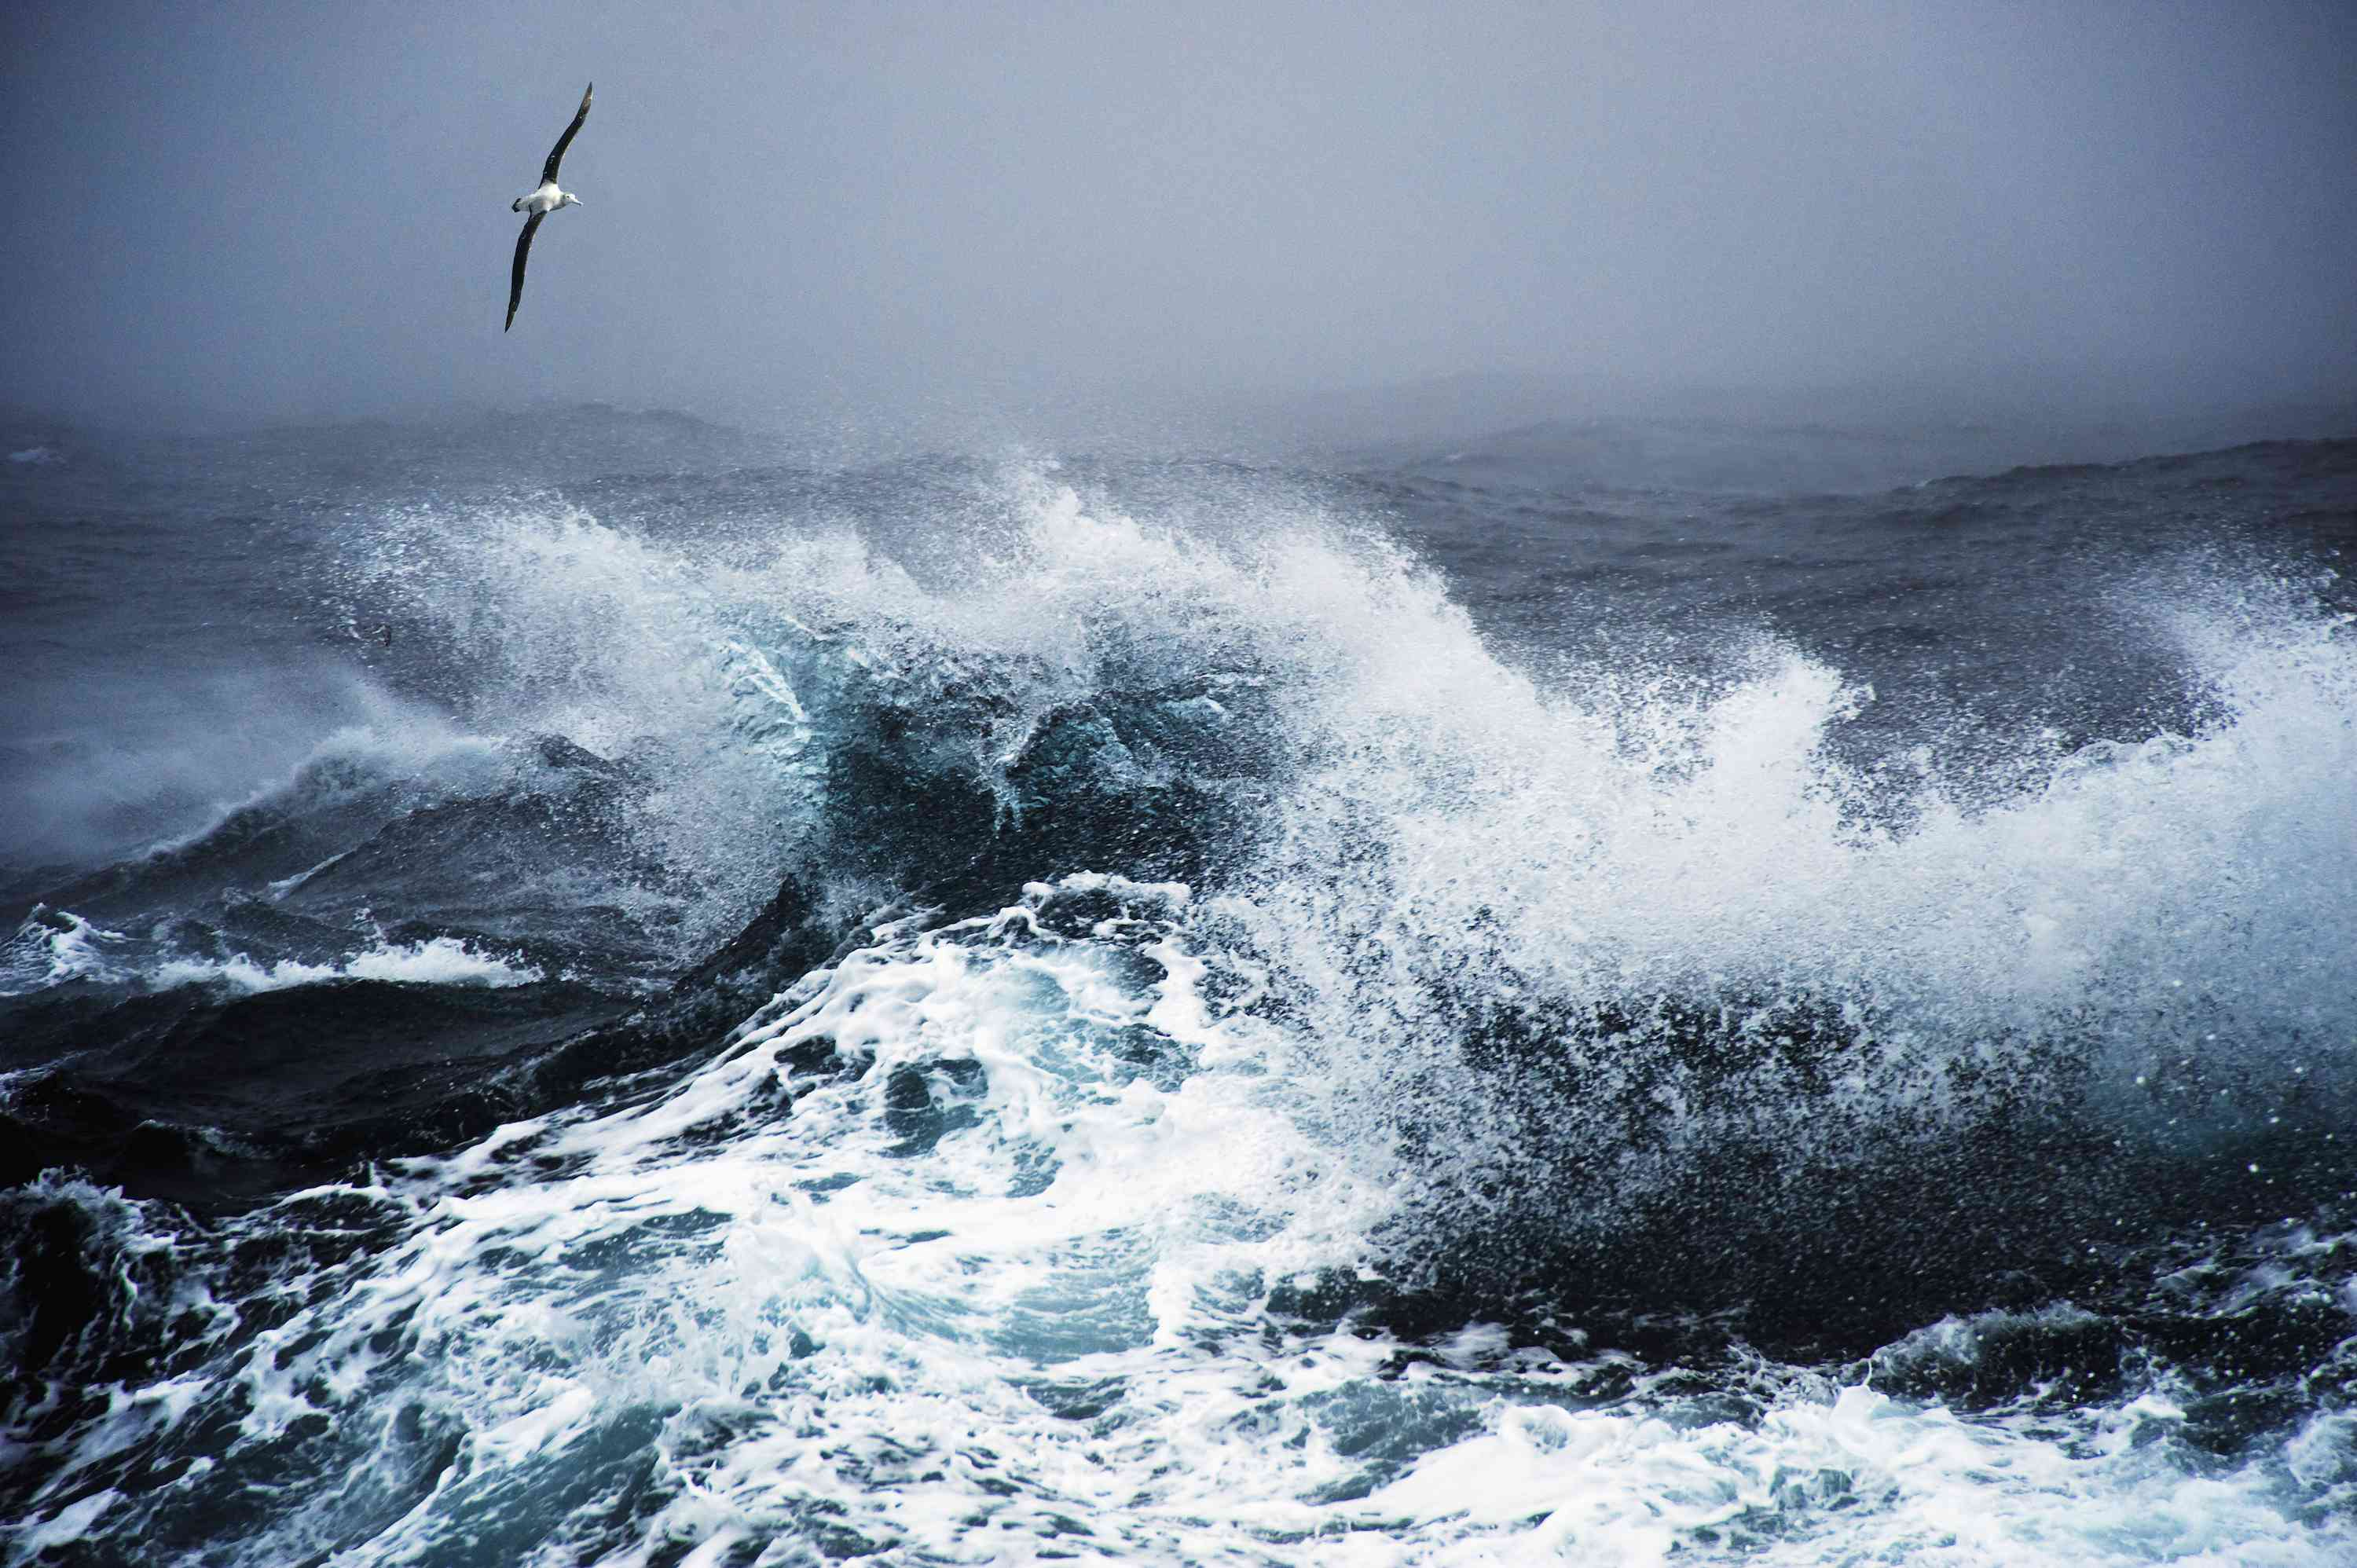 A wandering albatross flies over roughs seas at Drakes Passage in the southern Atlantic Ocean.